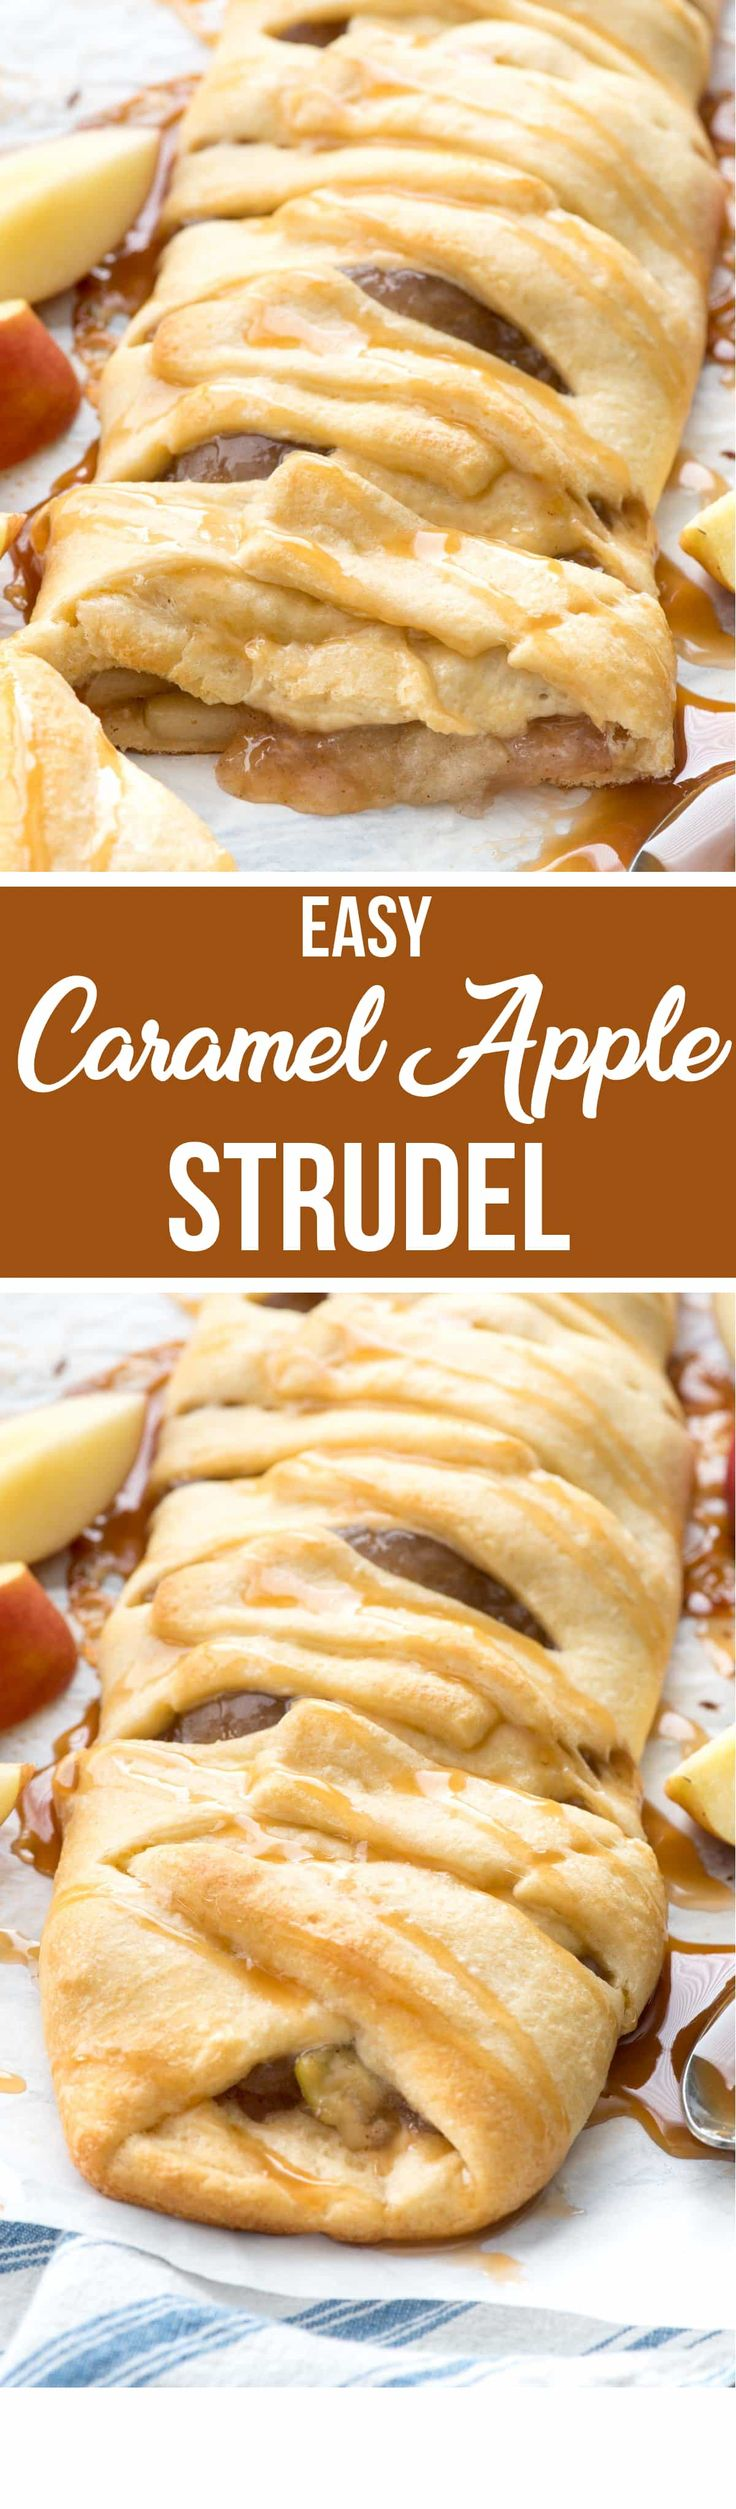 Easy Caramel Apple Strudel - this easy danish braid has just 3 ingredients and is the easiest breakfast or dessert recipe ever! Caramel Apple is the perfect fall flavor, especially in a pastry! via @crazyforcrust